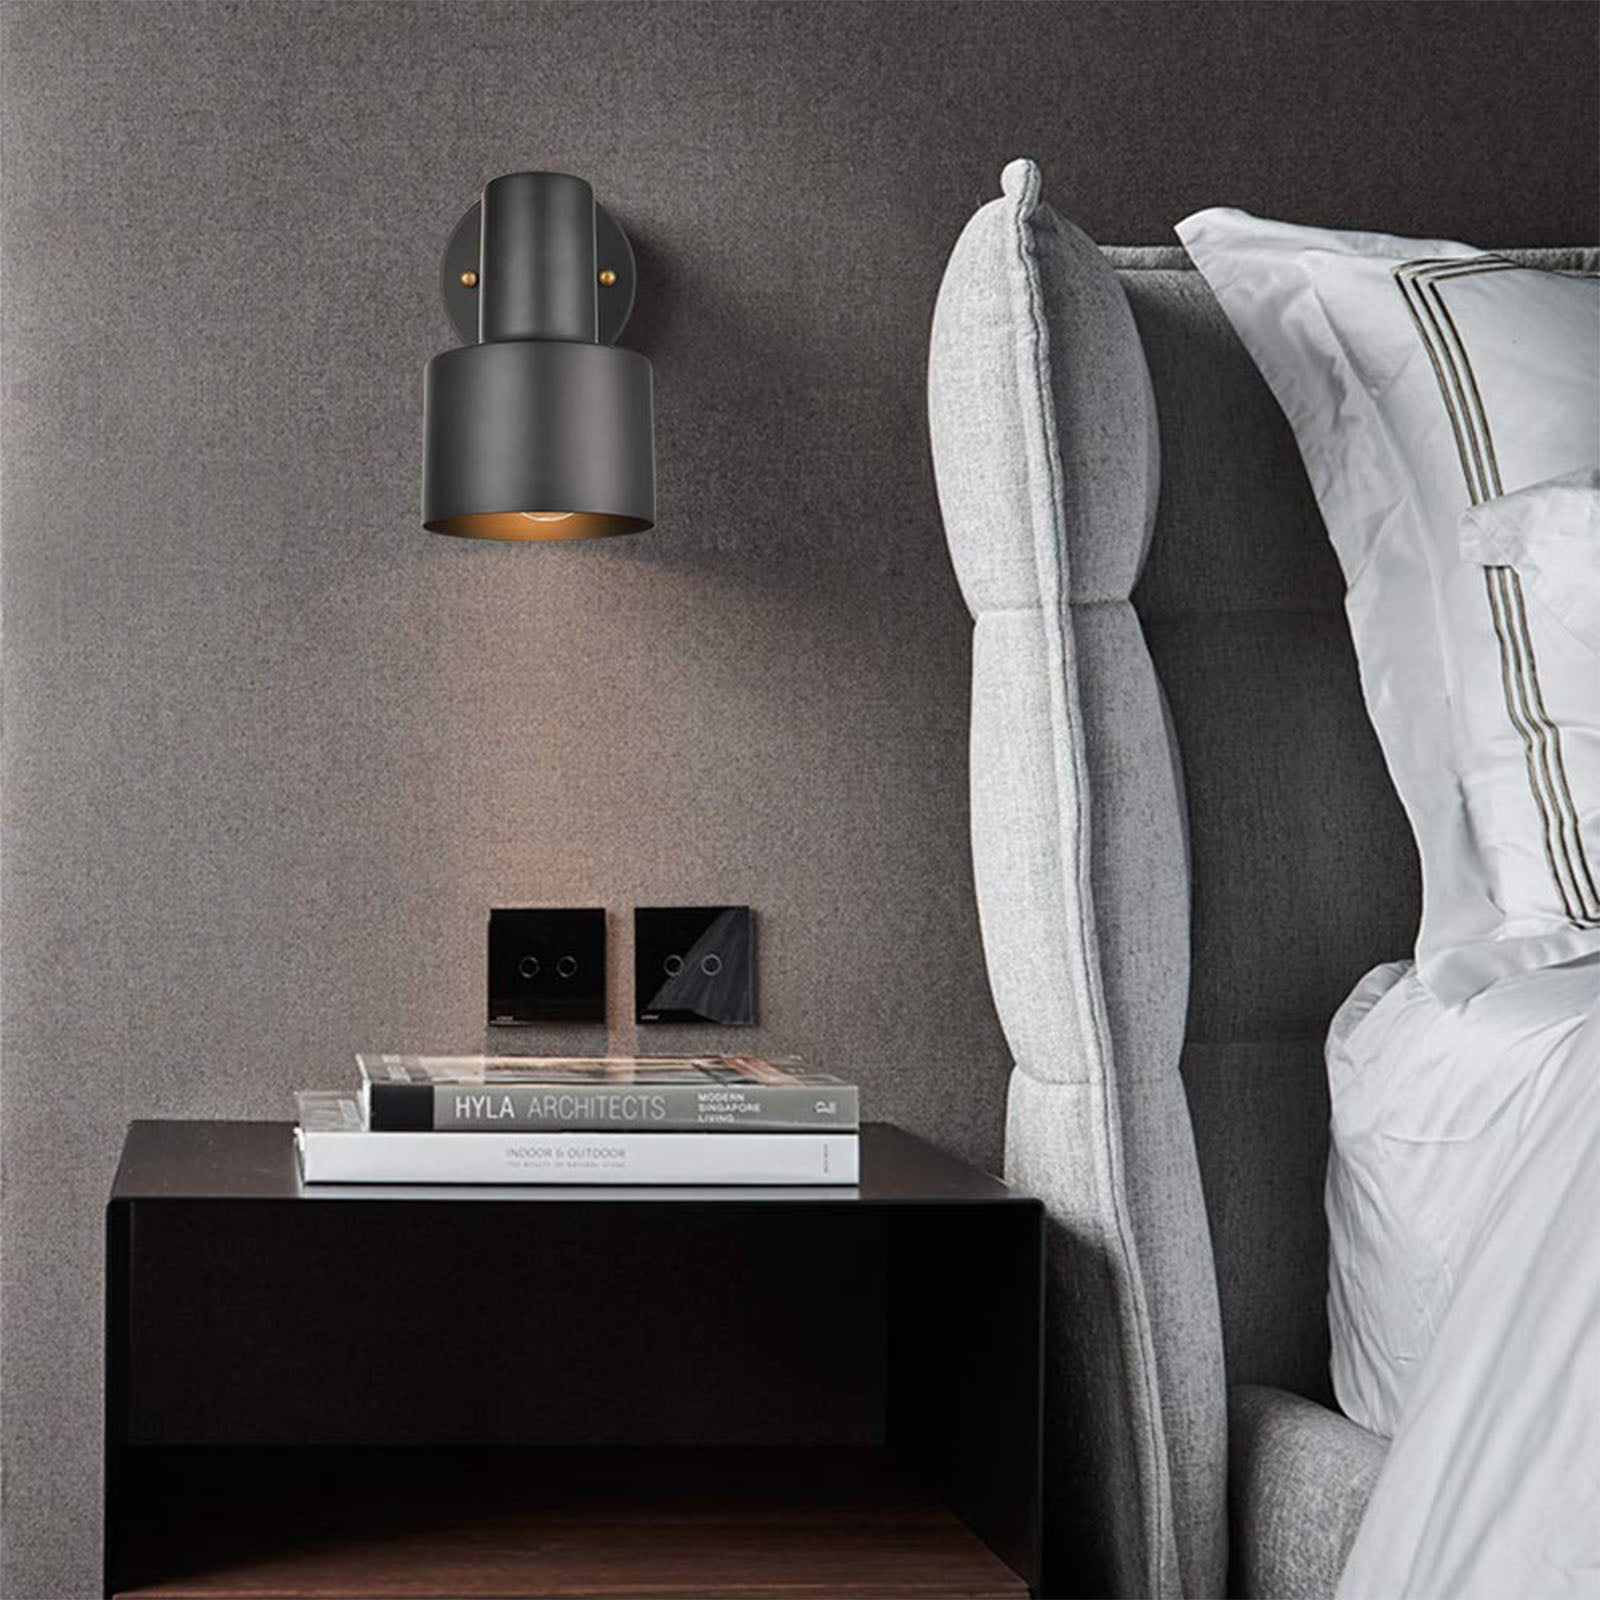 Hotel style headboard/wall reading lamp CY-BD-035-BK